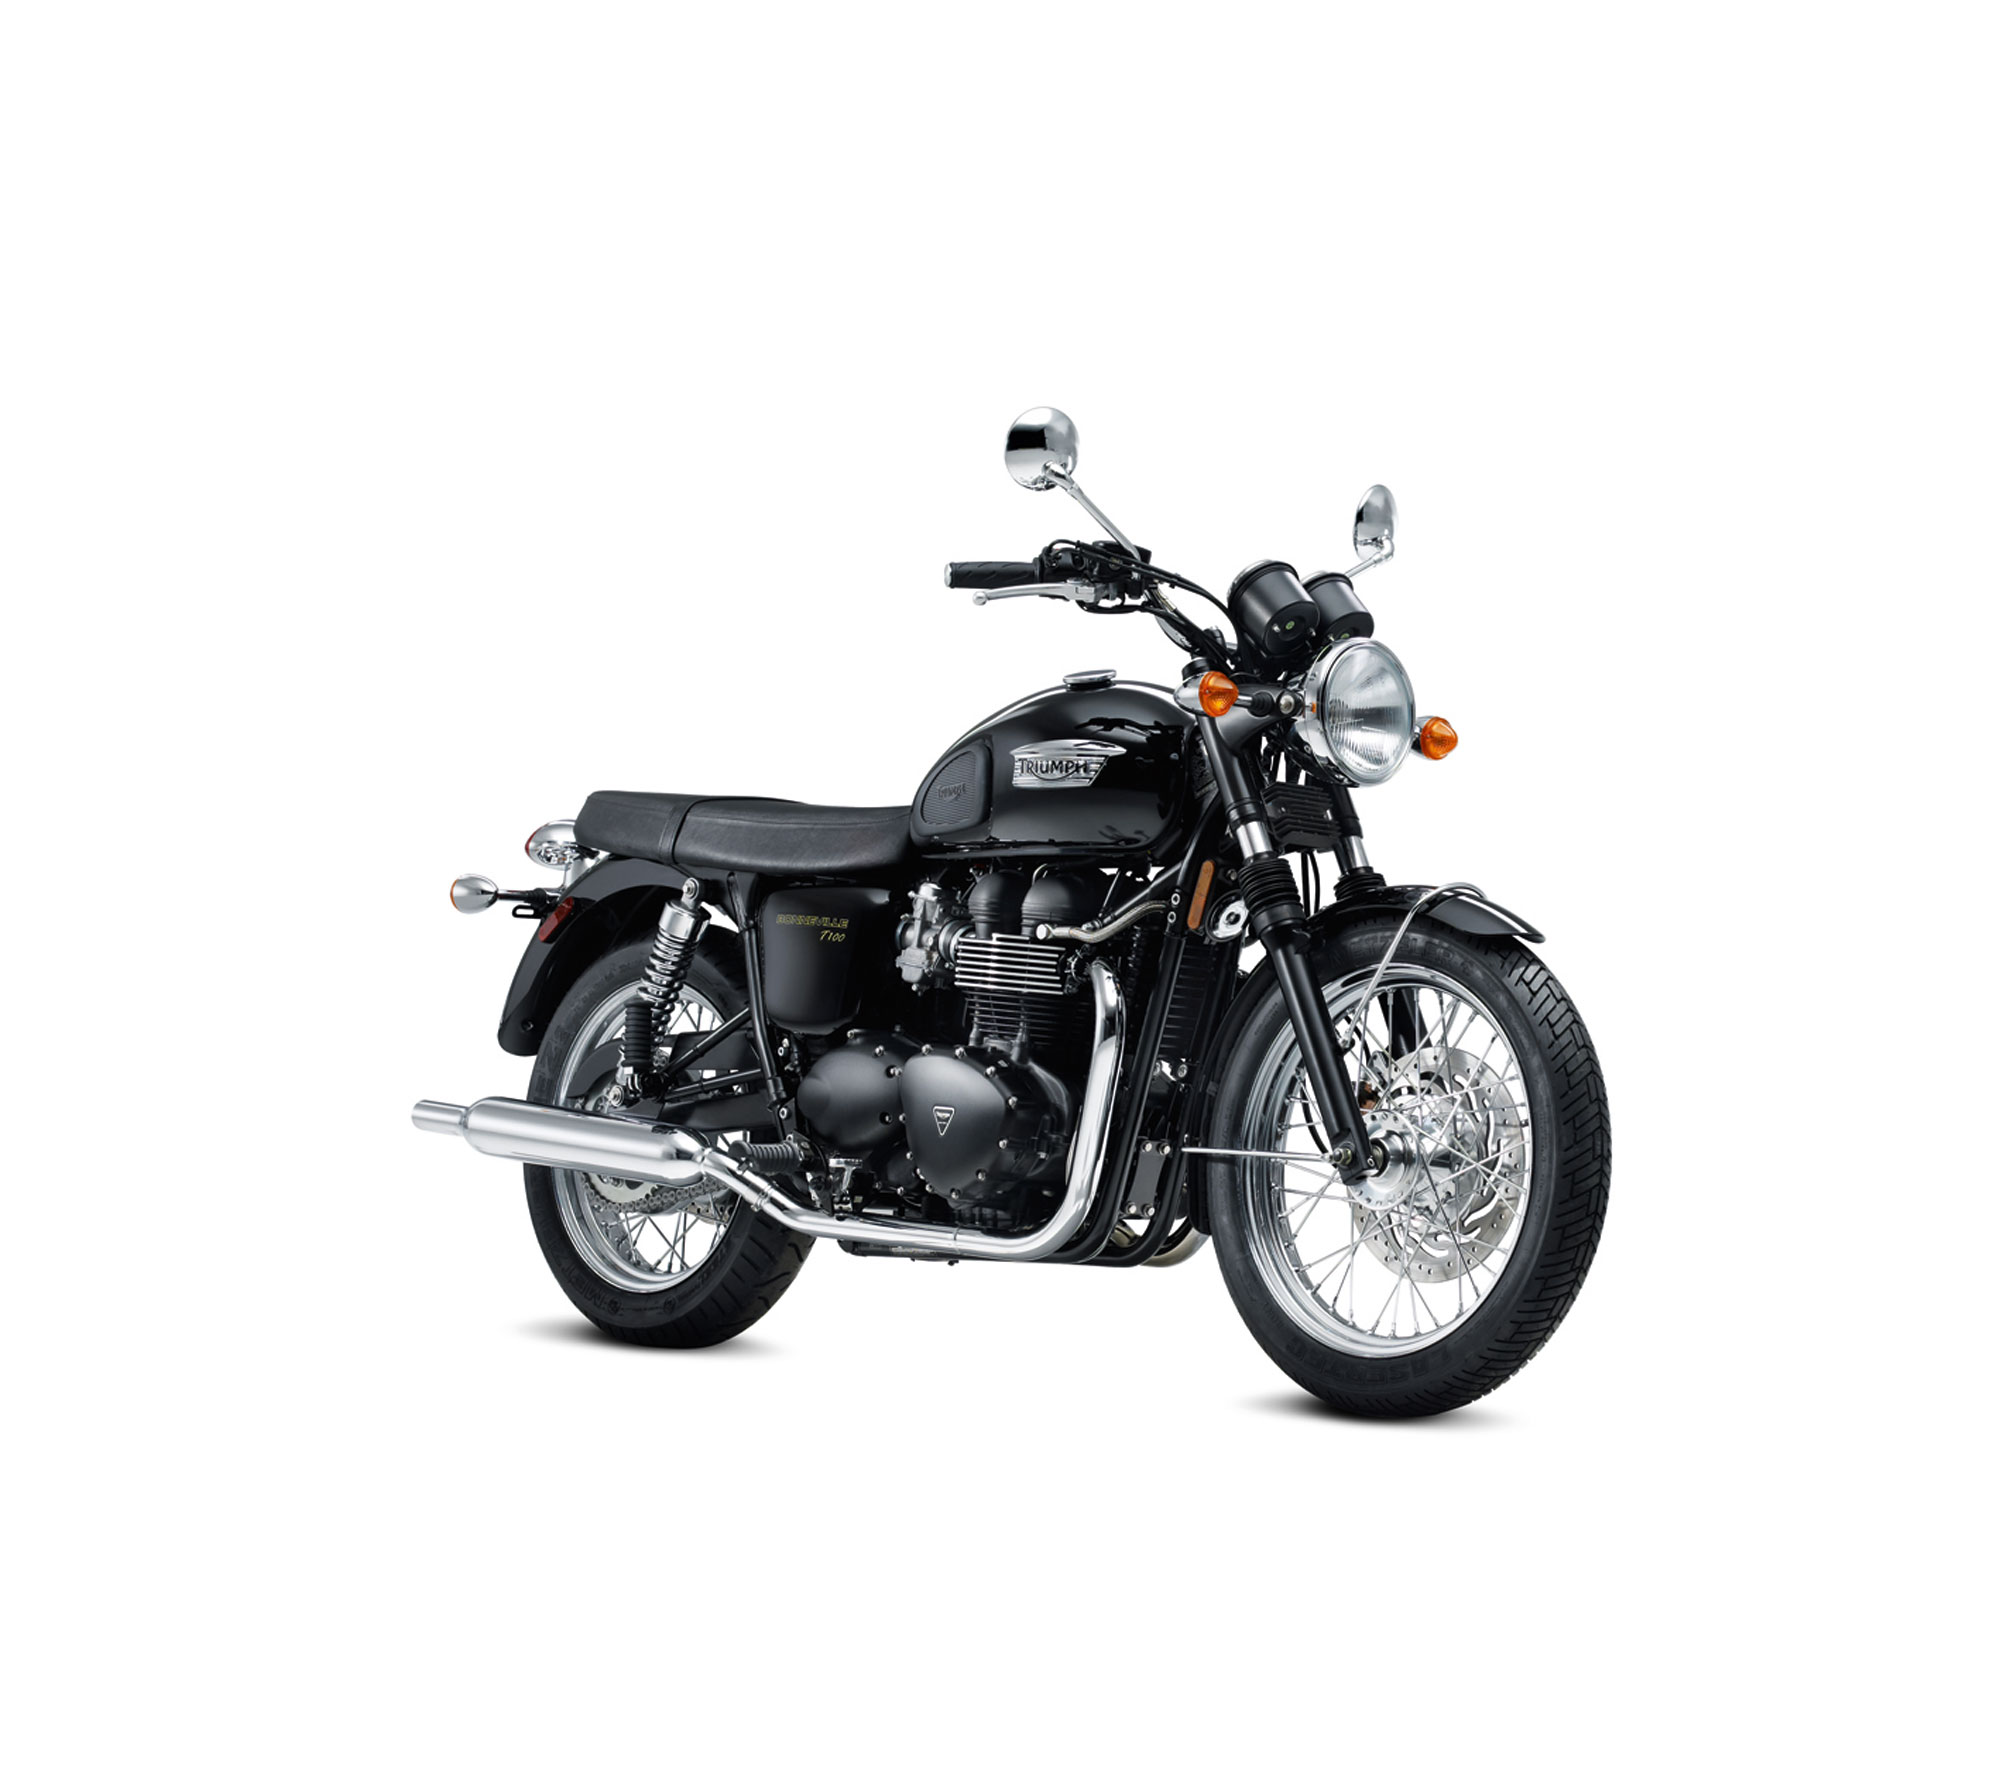 2013 Triumph Bonneville T100 Top Speed